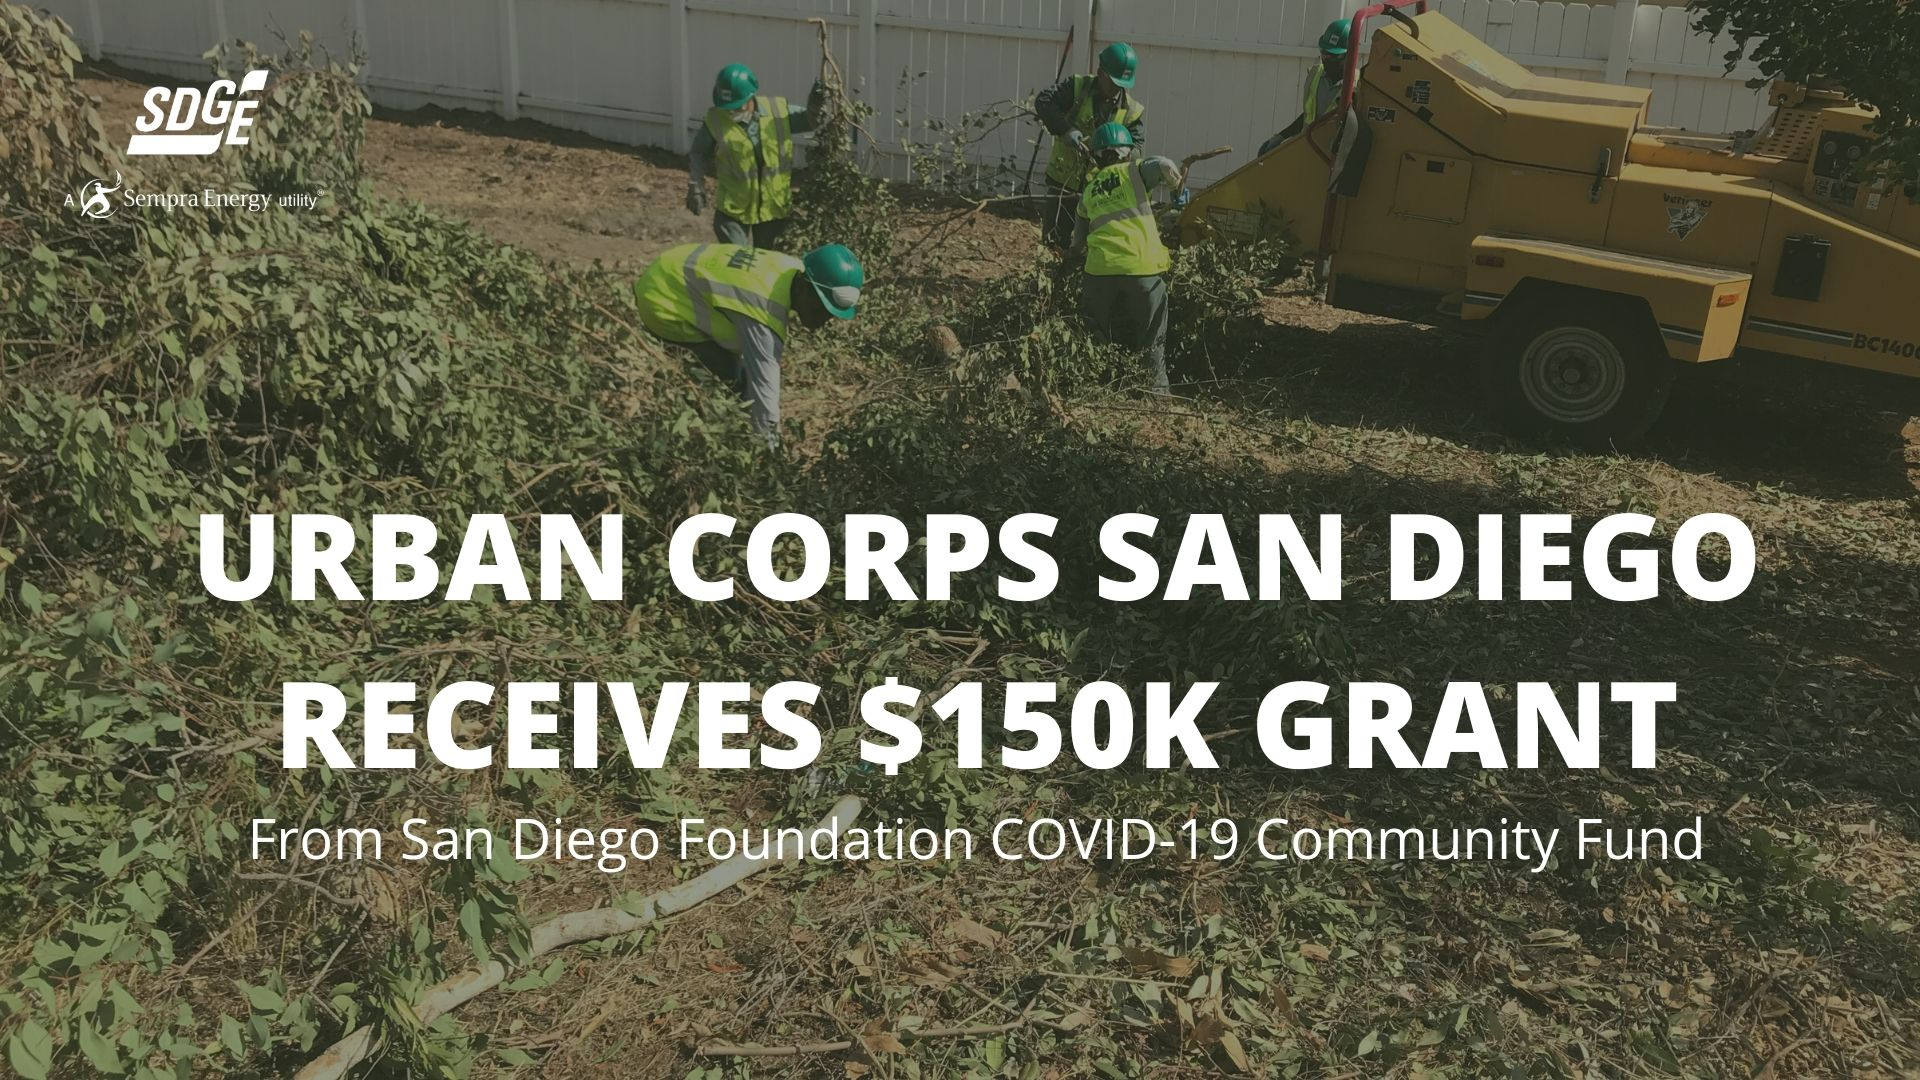 Urban Corps of SD County received $150K grant from the San Diego Foundation COVID-19 Community Response Fund